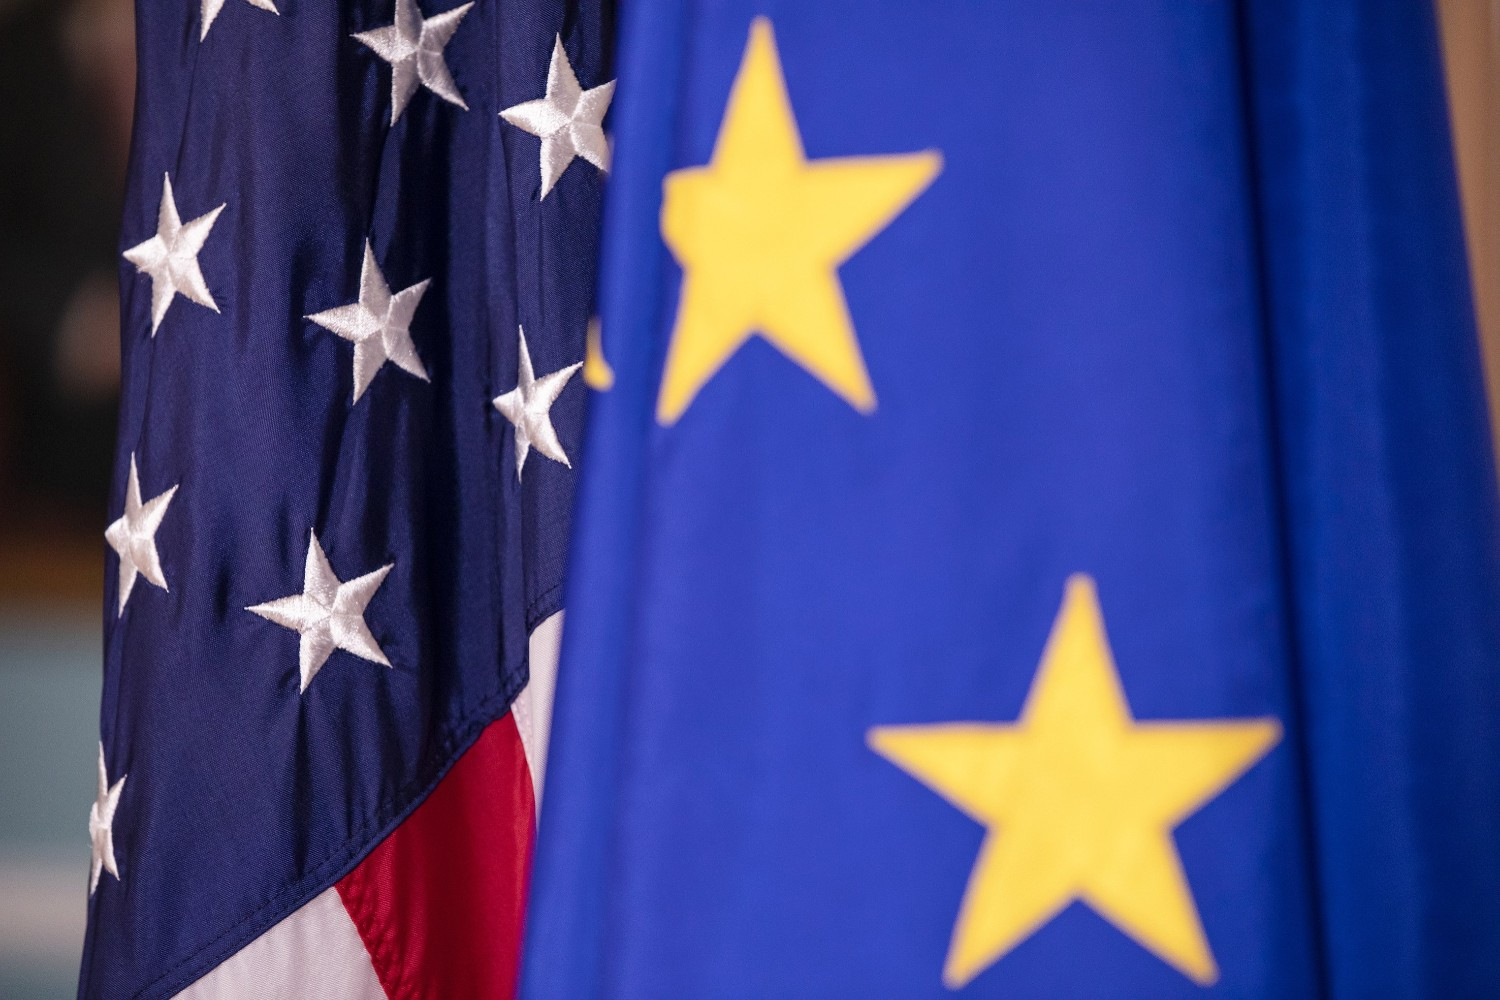 The European Union and U.S. flags are displayed before a Feb. 7 meeting between U.S. Secretary of State Mike Pompeo and the E.U. high representative for foreign affairs and security, Josep Borrell. (Samuel Corum/Getty Images)